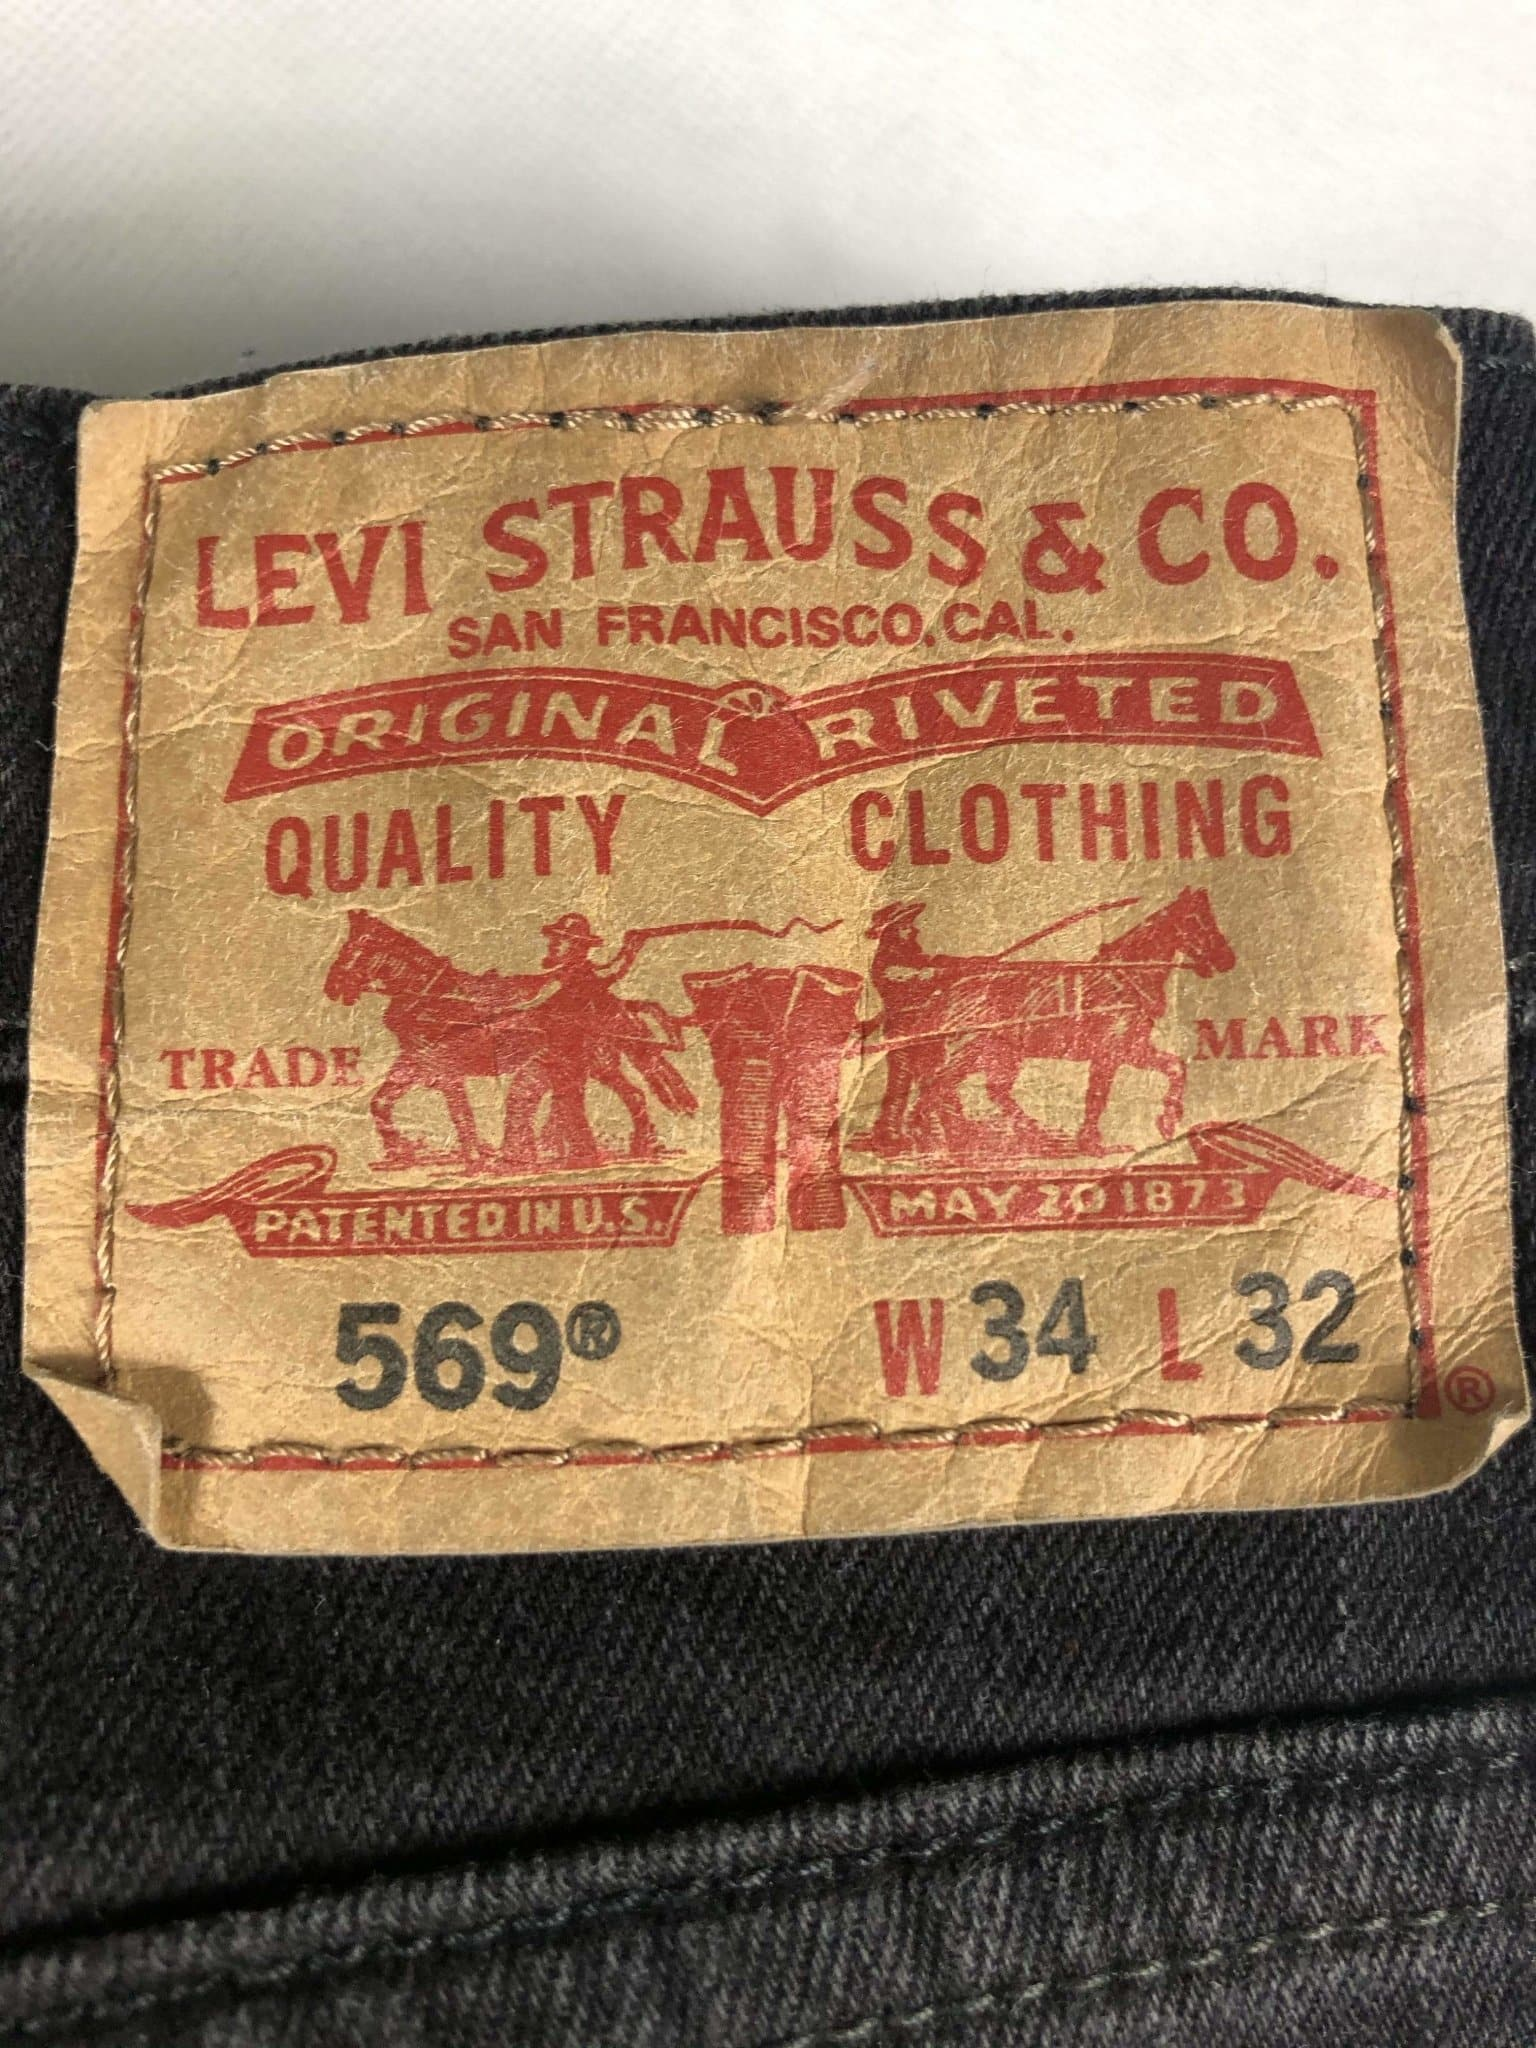 Vintage Levi's 569 Jeans W34 L32 (M15) - Discounted Deals UK